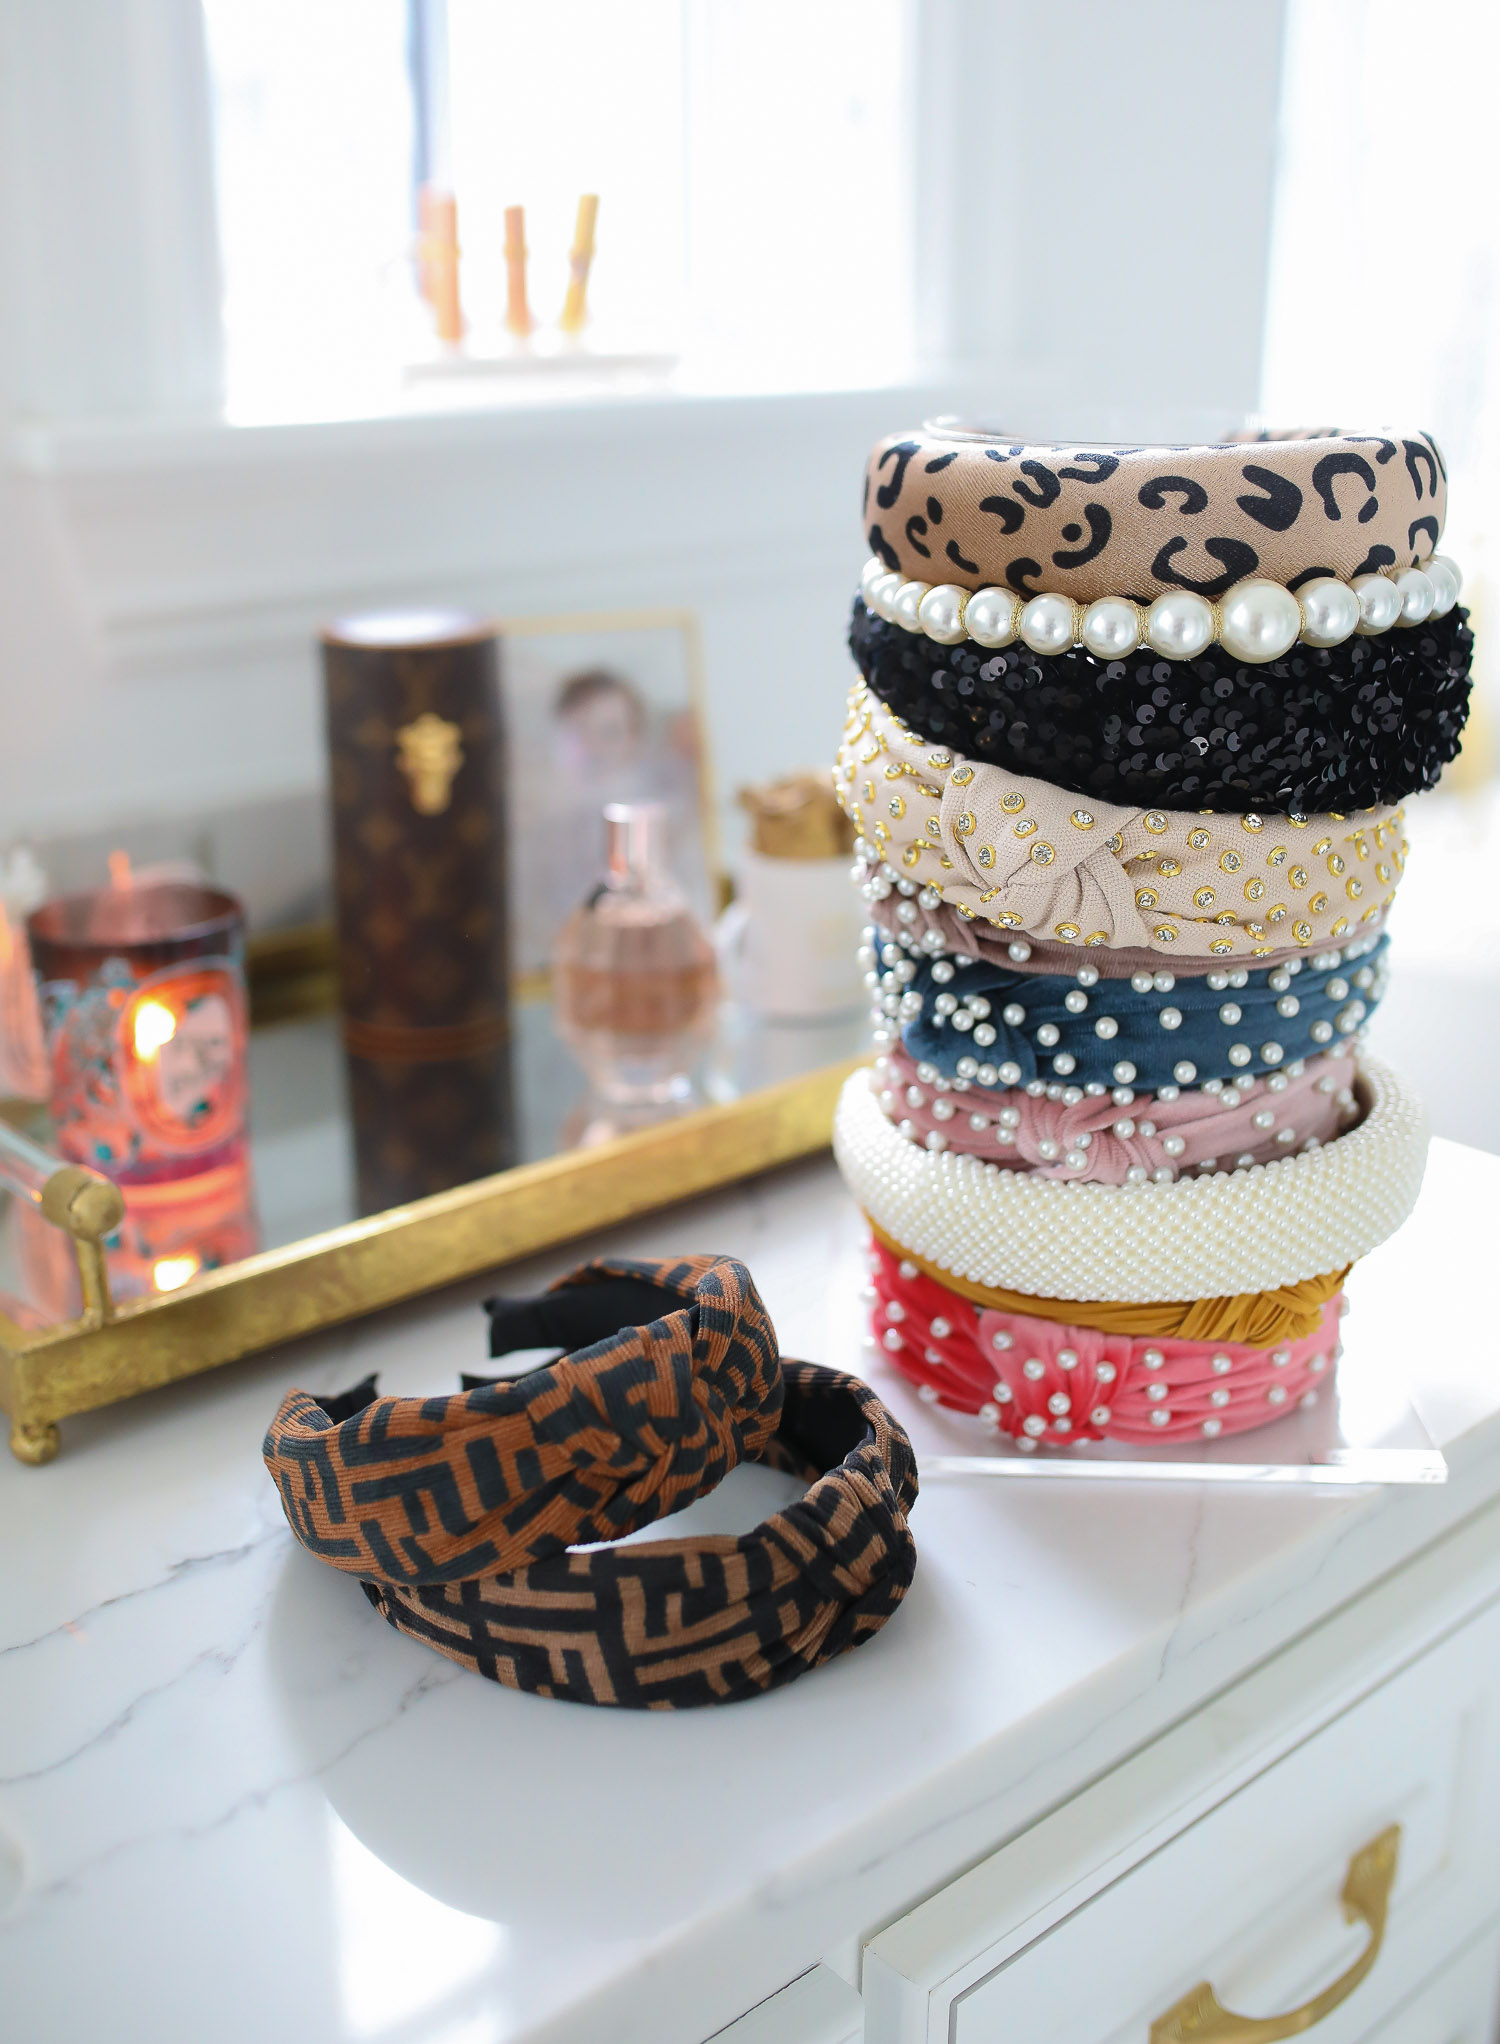 fendi dupe headbands, handband stand, swig marble cup insulated, top amazon must haves, amazon best buys 2020, emily gemma, amazon prime must haves blog post | Amazon Prime Favorites by popular US life and style blog, The Sweetest Thing: image of Amazon Prime headbands.